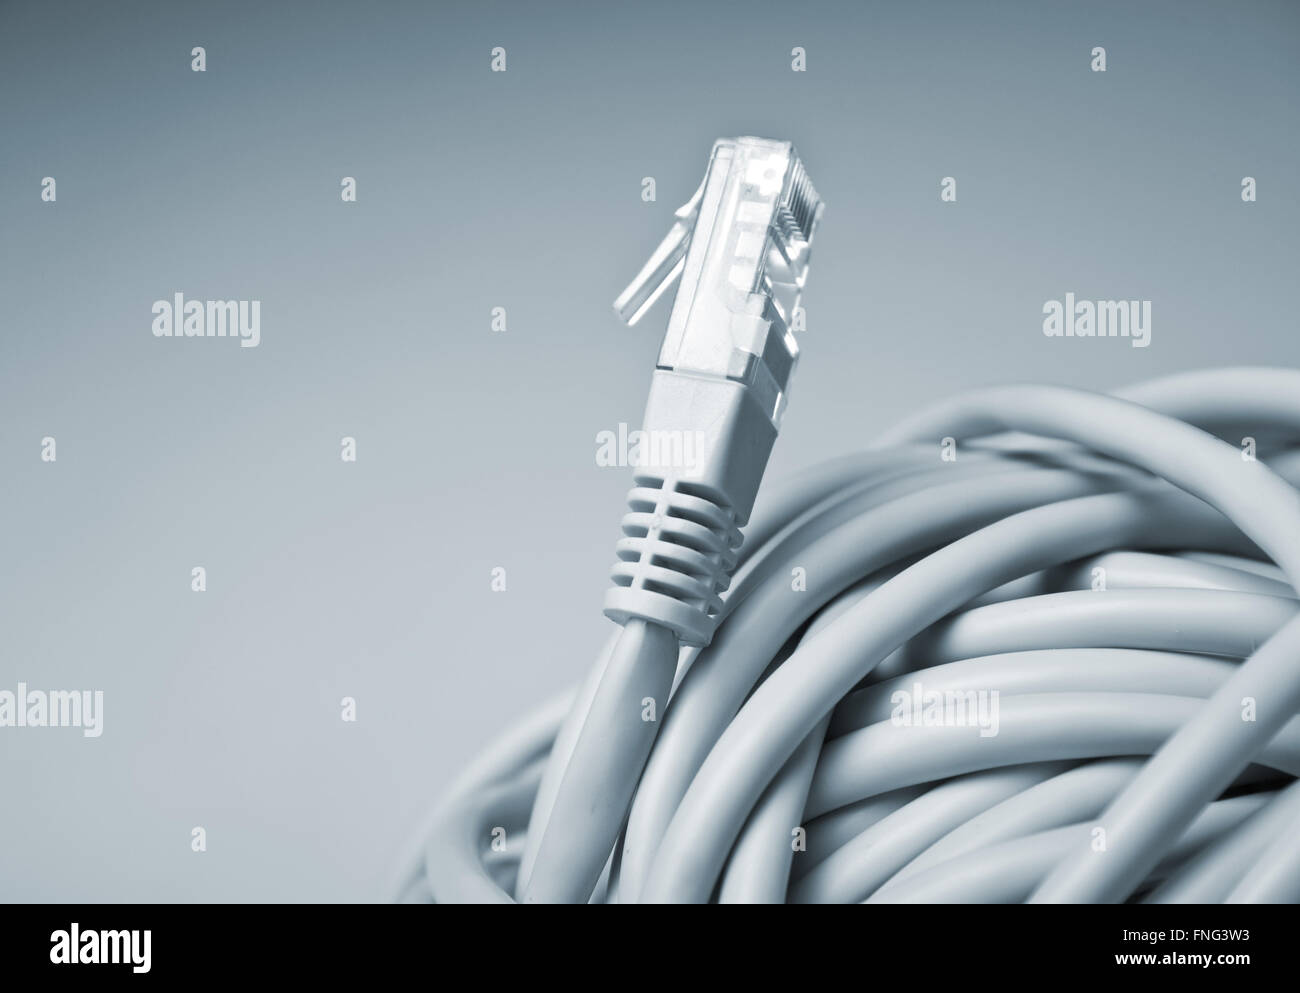 Network Connection Socket Stock Photos Wiring Cable Horizontal Side View Of A Gray Image